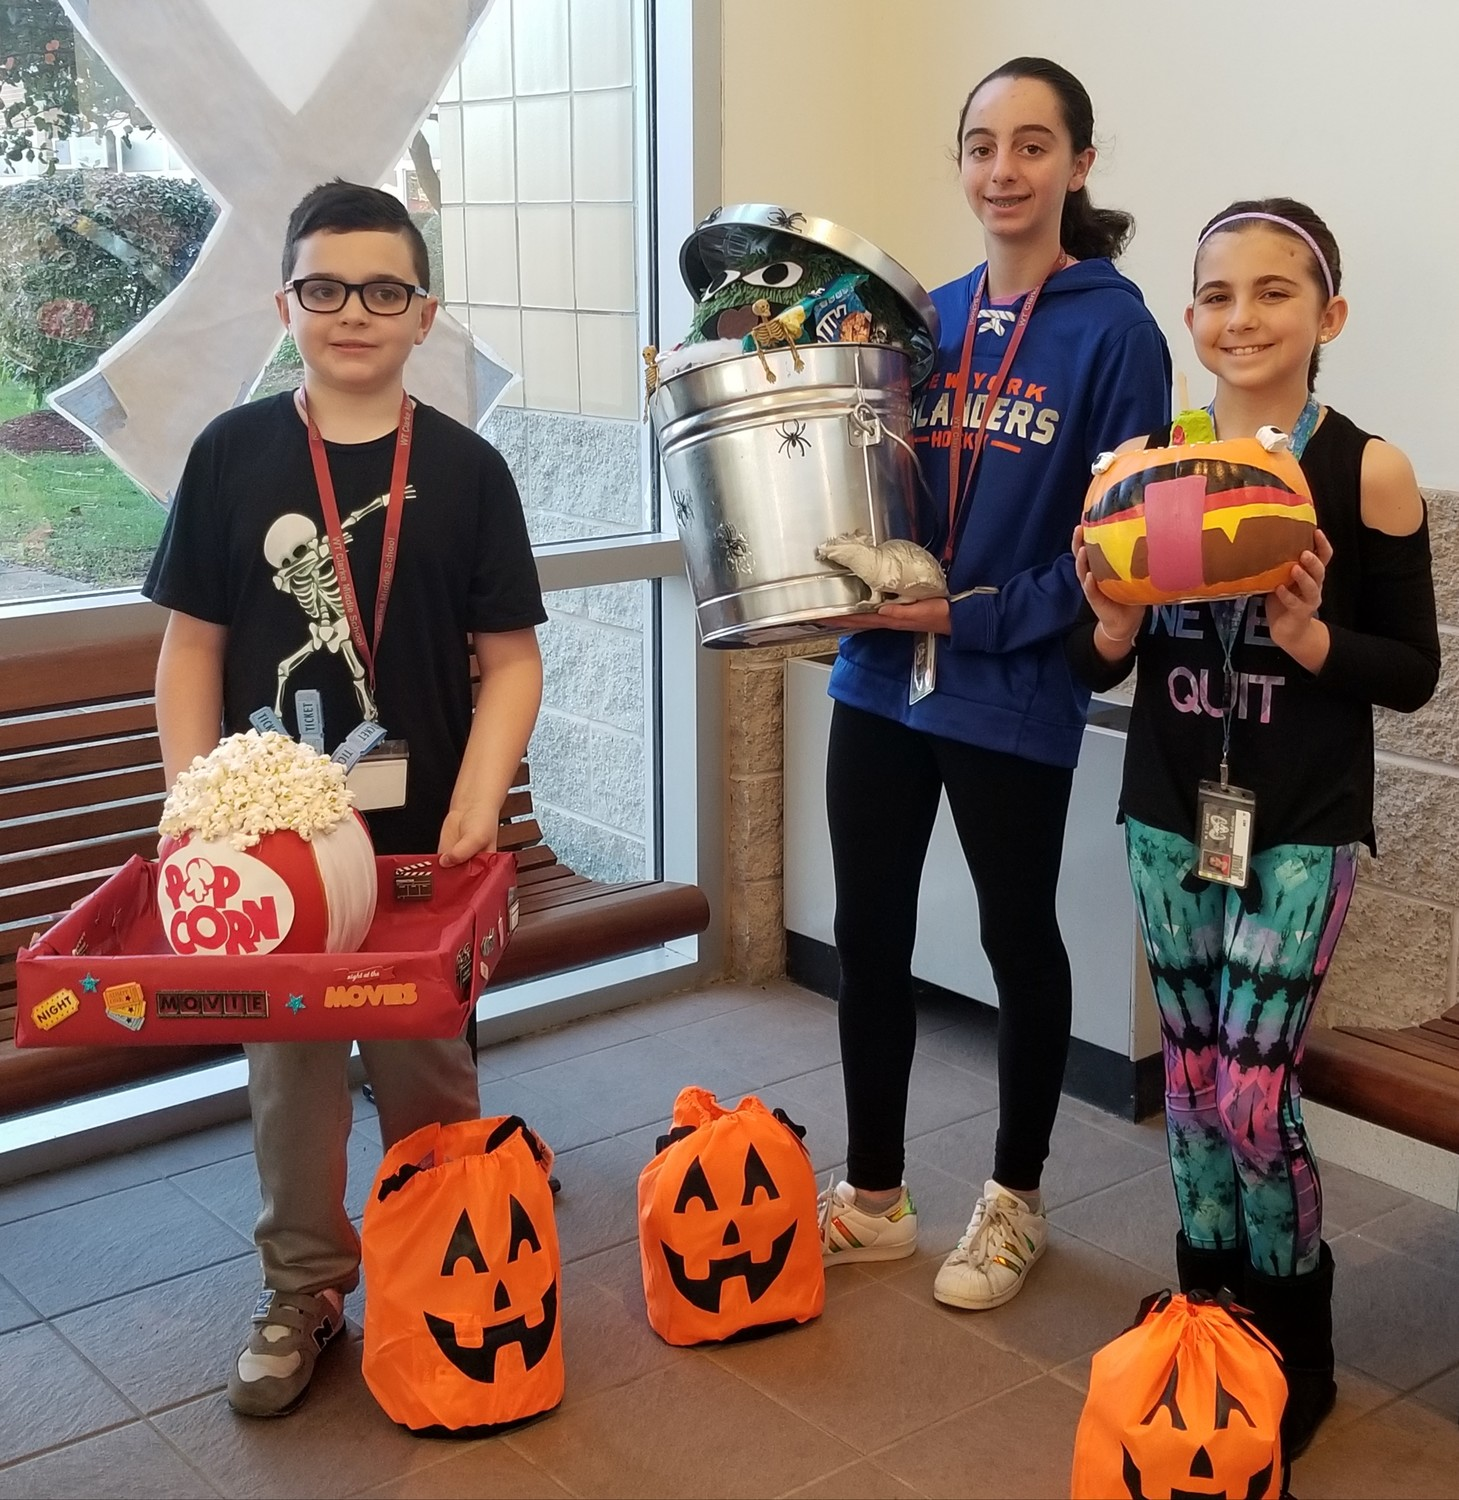 Connor Jones, a sixth-grade student at W.T. Clarke Middle School, left, Juliet Cimaglia, a seventh-grade student, and Shay Genna, a sixth-grade student, were awarded top prizes during the school's second annual pumpkin contest.